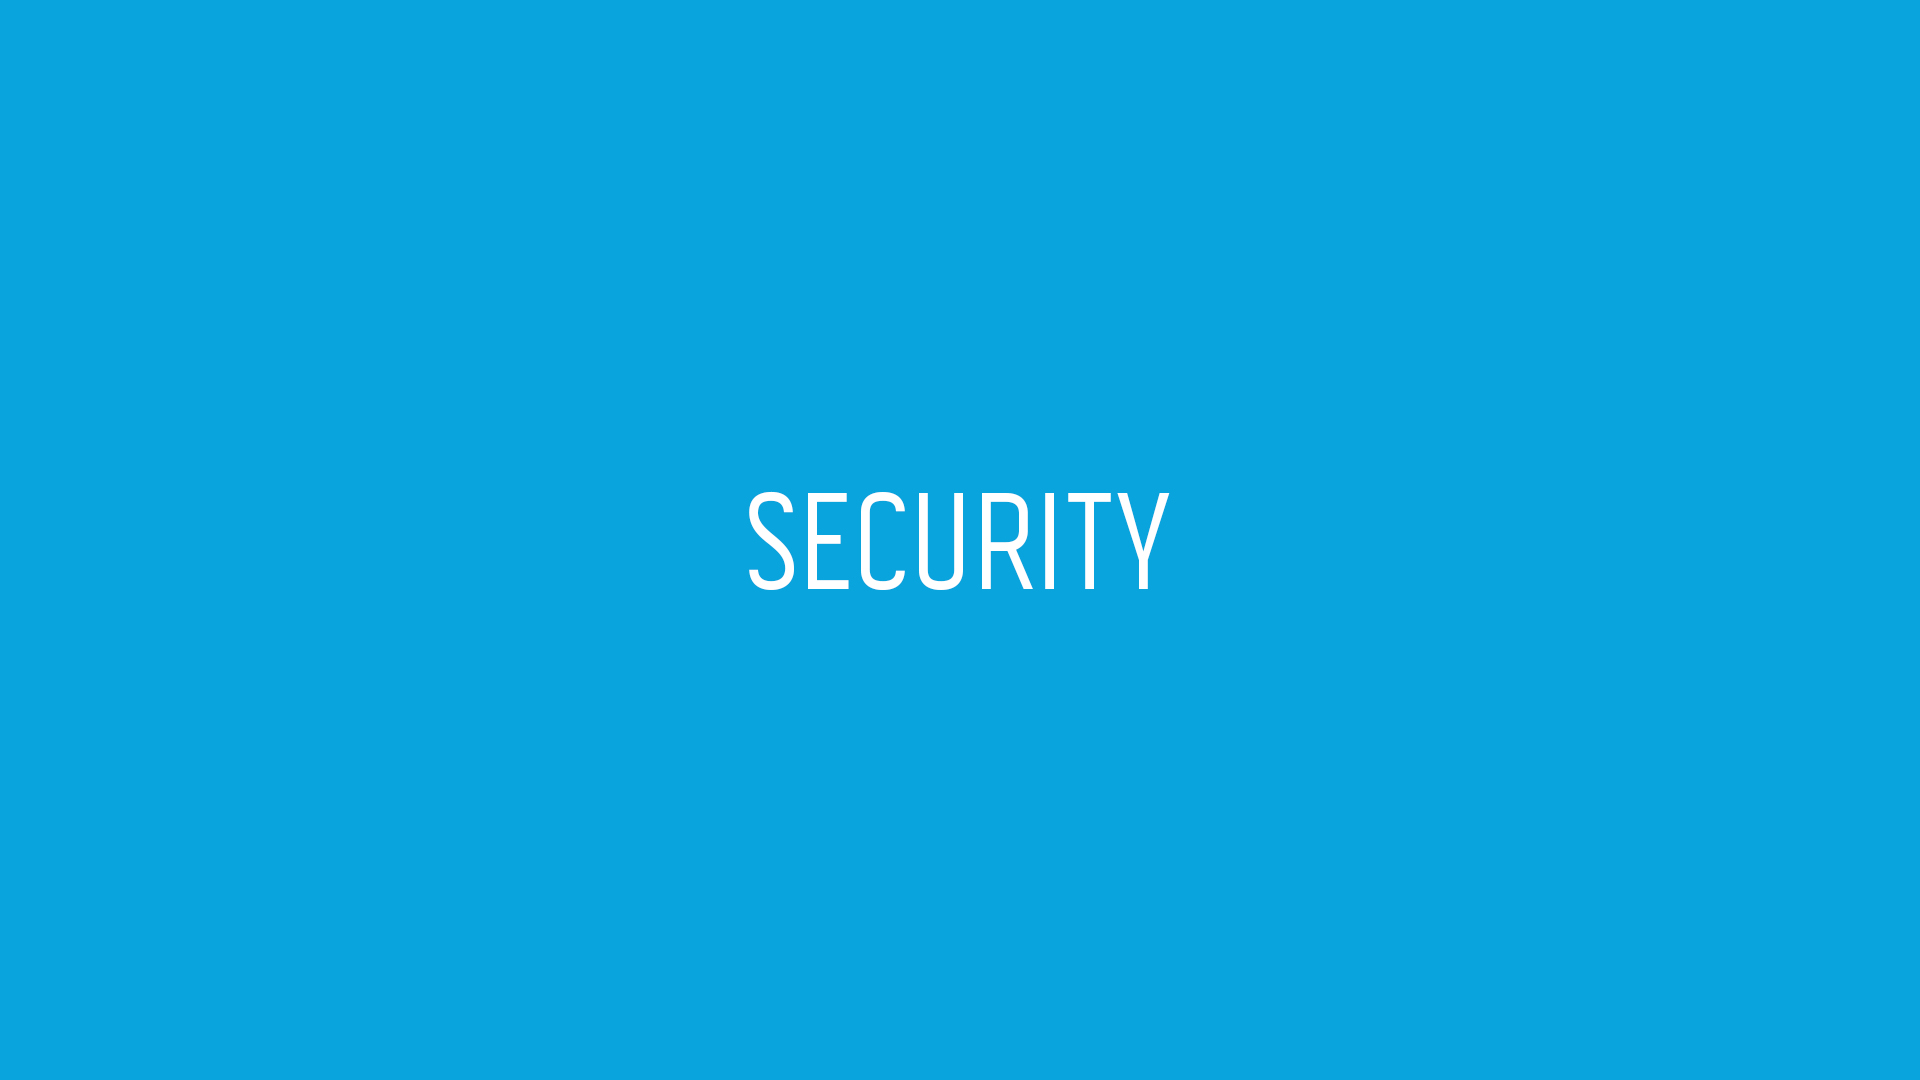 SECURITY - Led by Tony Pirkle   Each time a group is gathered in our building, we have volunteer security officers on the premises. They are here to protect and serve our guests as needed. All officers are background checked and thoroughly vetted.